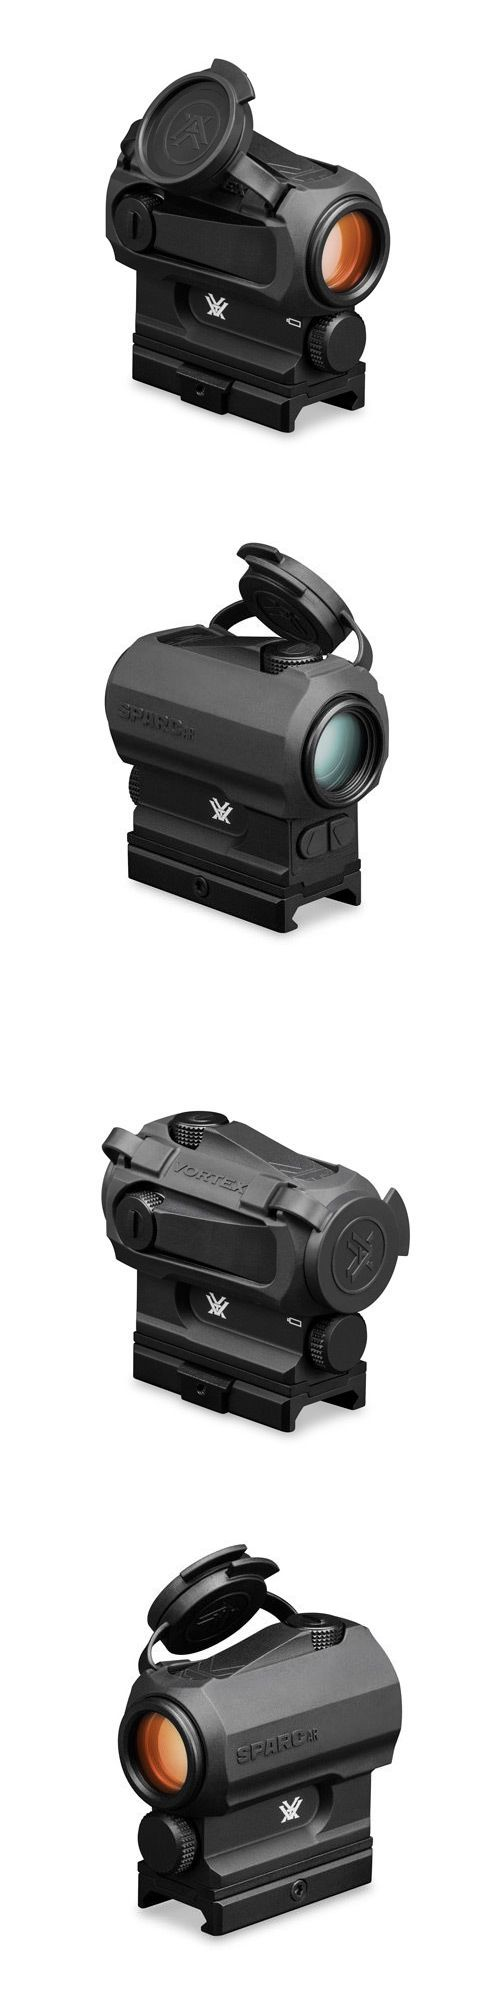 Red Dot and Laser Scopes 66827: Vortex Sparc Ar Red Dot 2 Moa Mount Sight Scope Spc-Ar1 -> BUY IT NOW ONLY: $179.99 on eBay!